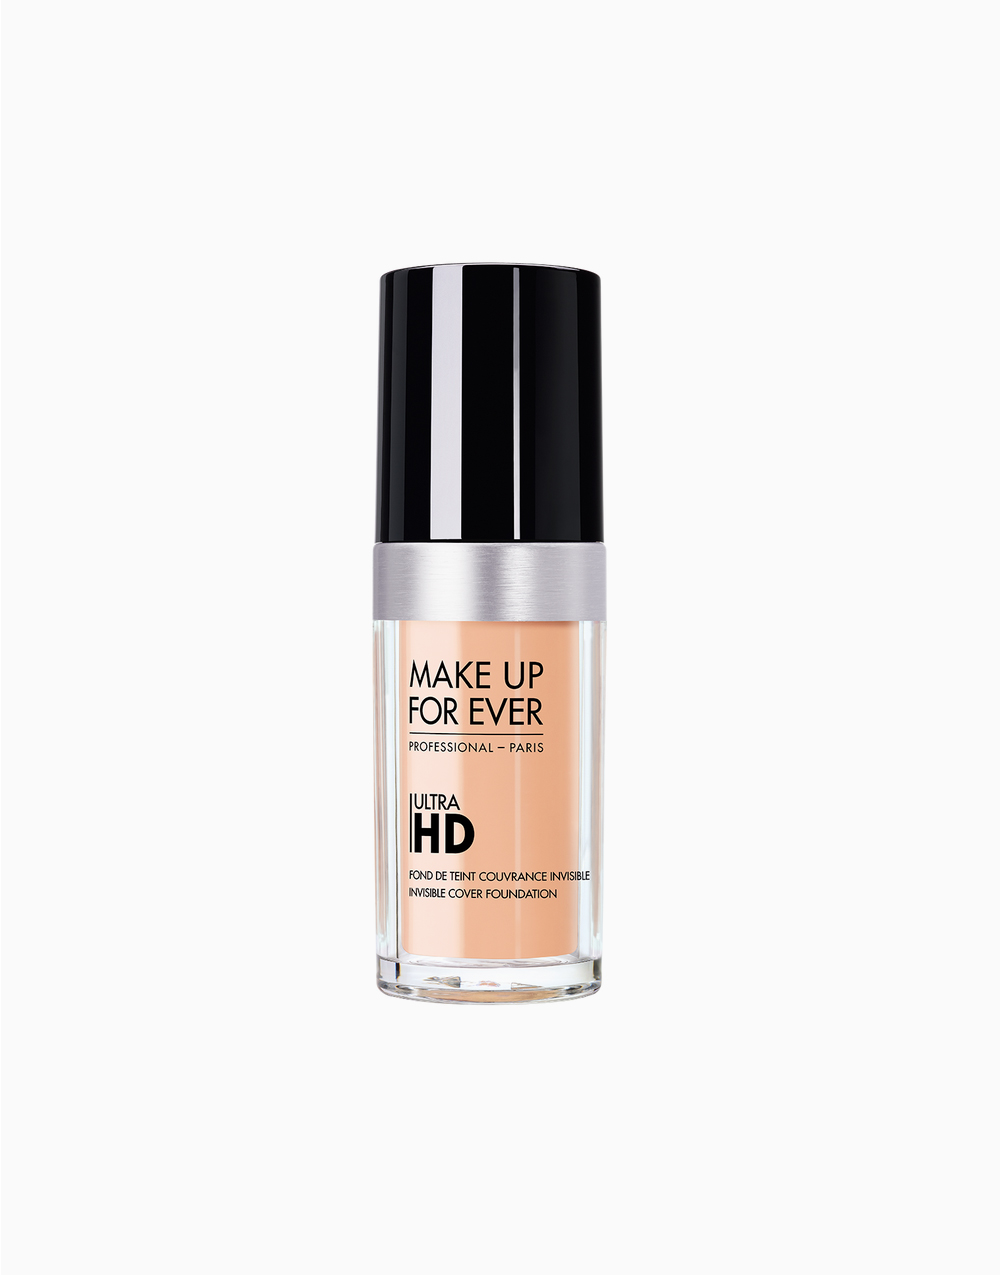 Ultra HD Foundation (30ml) by Make Up For Ever | R230